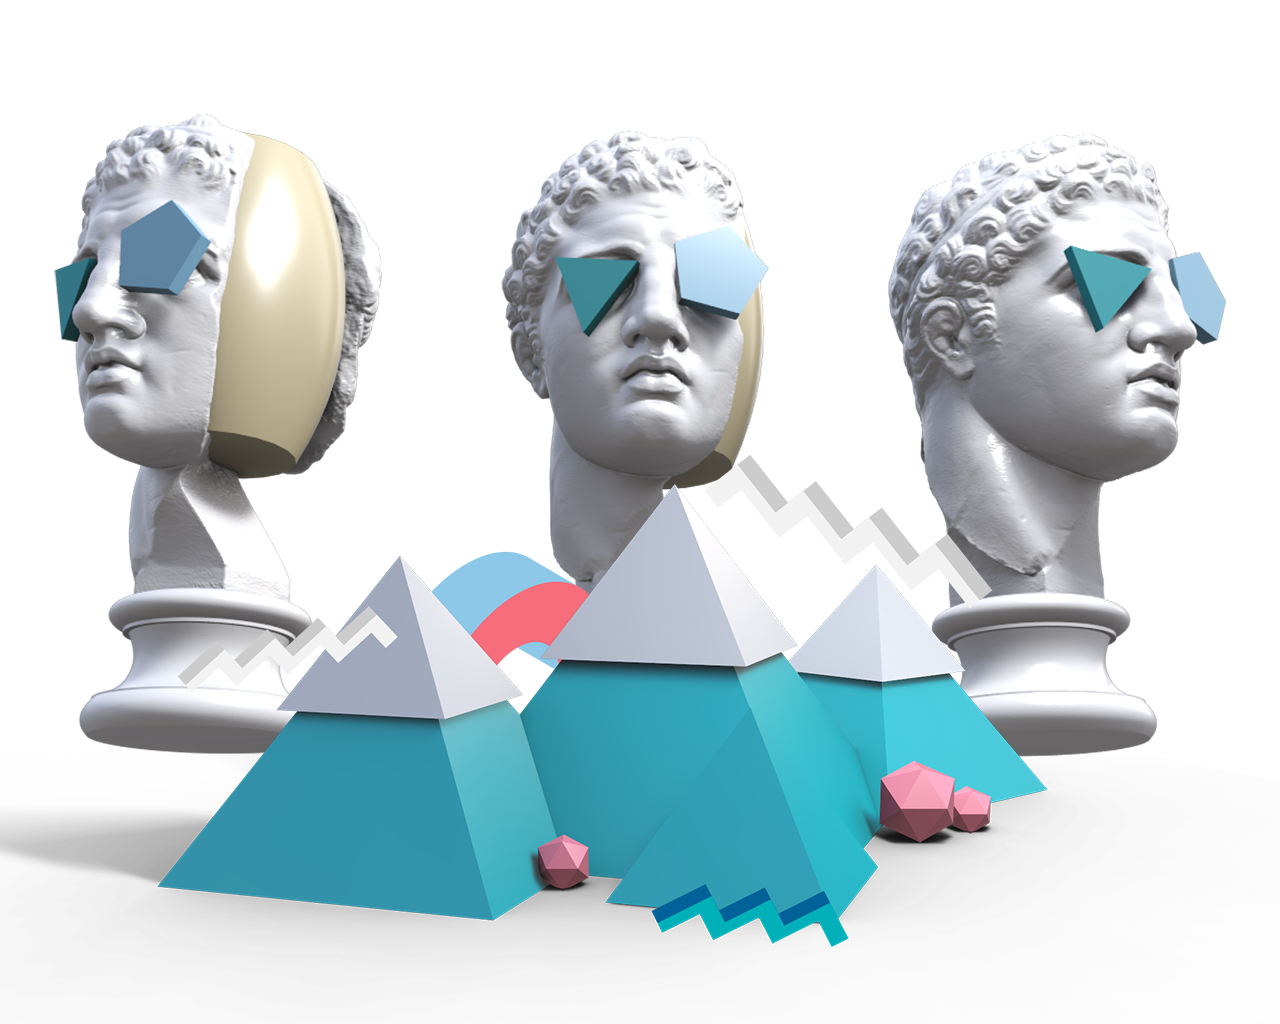 3d rendering of three sculture busts wearing sunglasses behind three colorful mountains